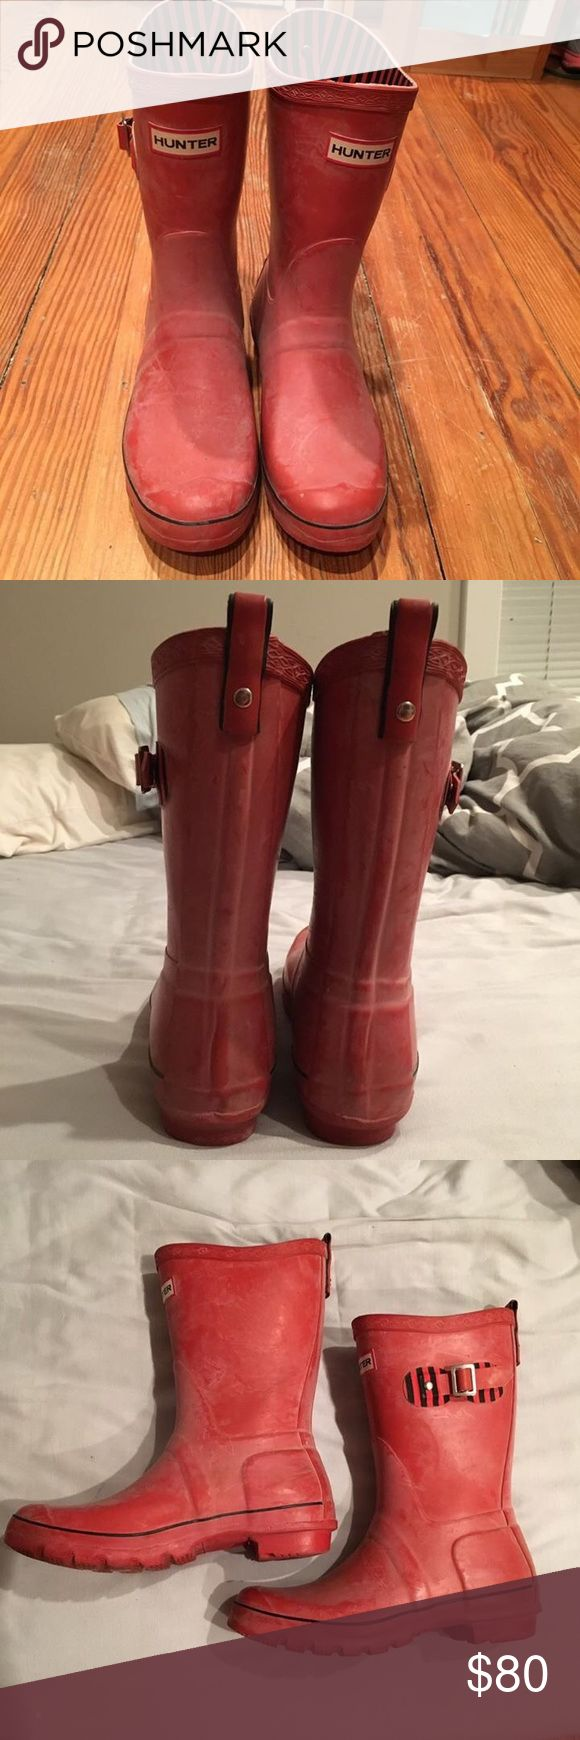 Red Hunter Boots Woman's size 9. Need to be shined up with a little oil. Small scuff marks on inside of the heel, but otherwise gently used. Hunter Boots Shoes Winter & Rain Boots